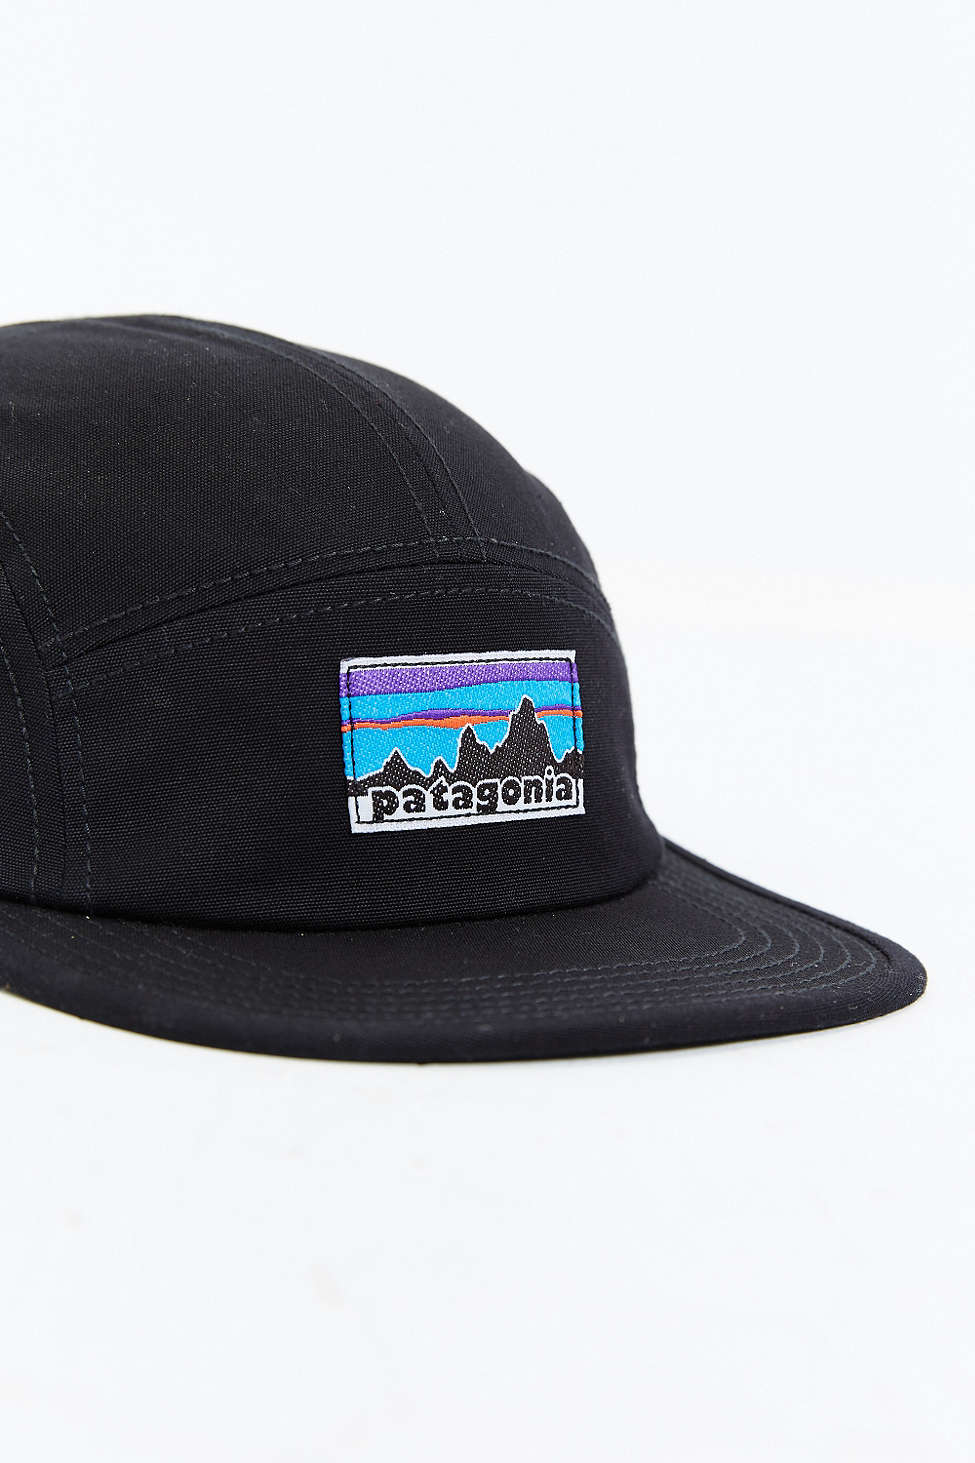 Lyst - Patagonia Retro Fitz Roy Label 5-panel Baseball Hat in Black ... f19d764d833d